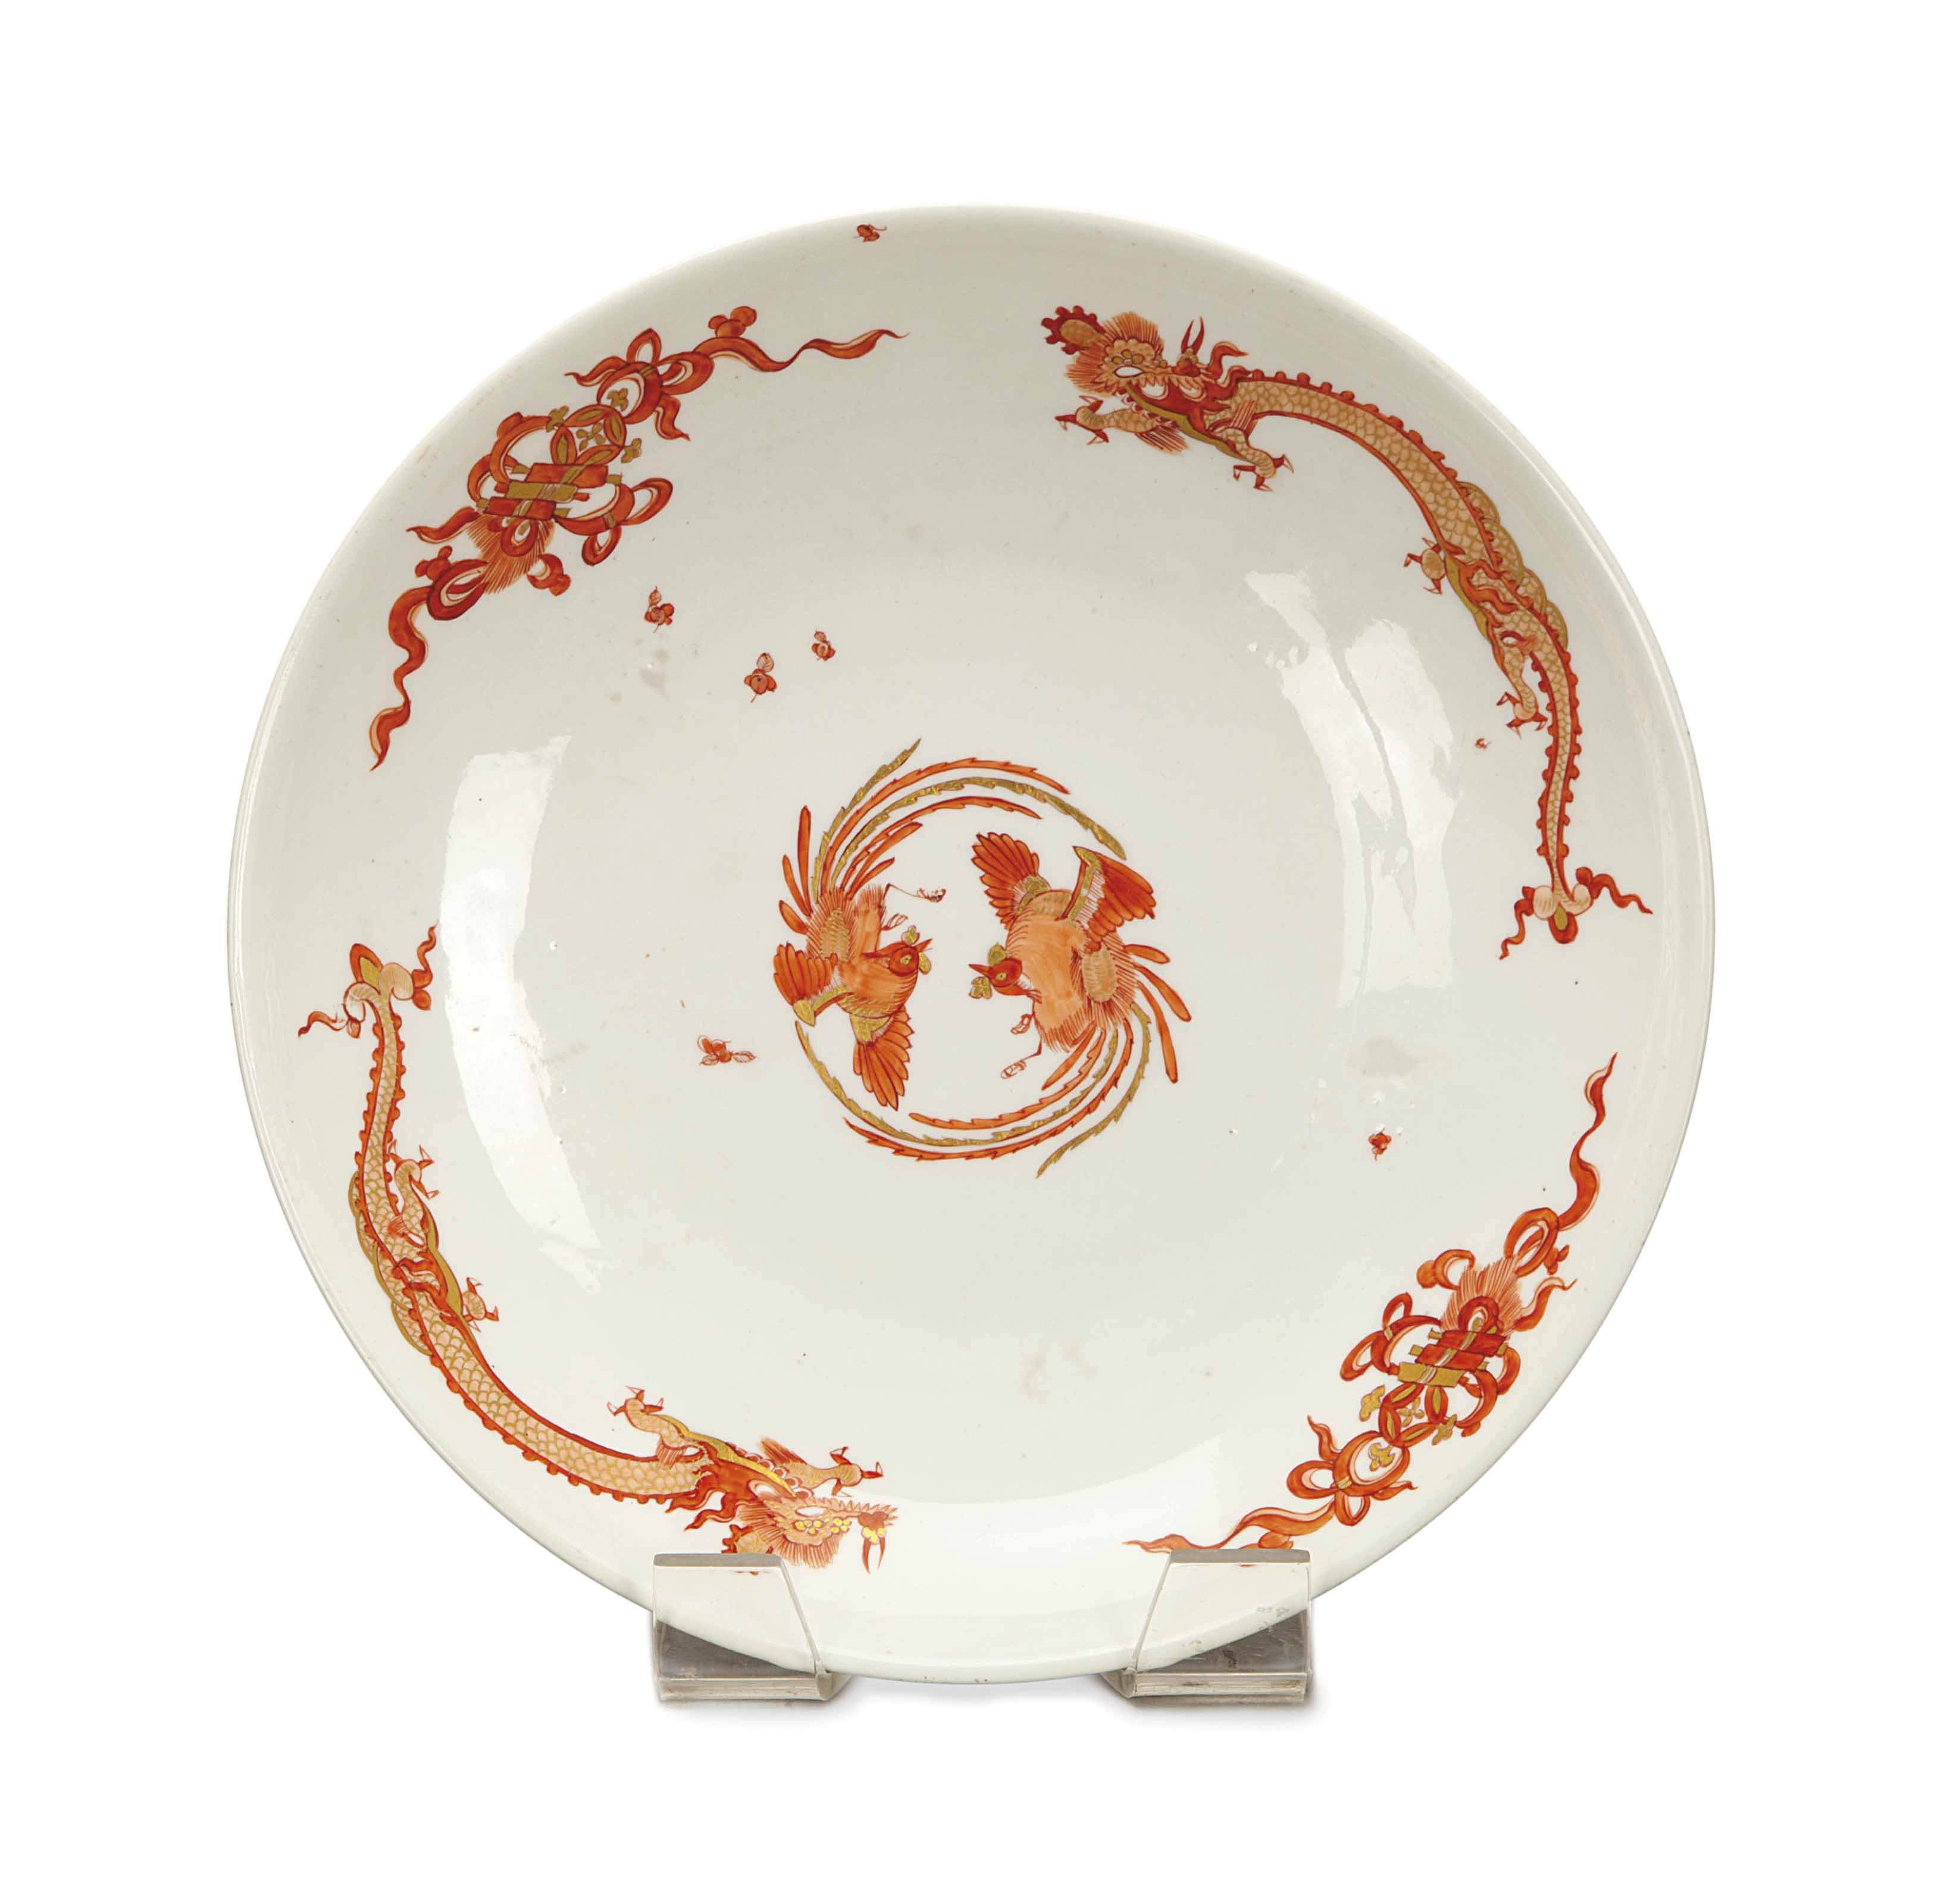 A GERMAN PORCELAIN CHARGER IN